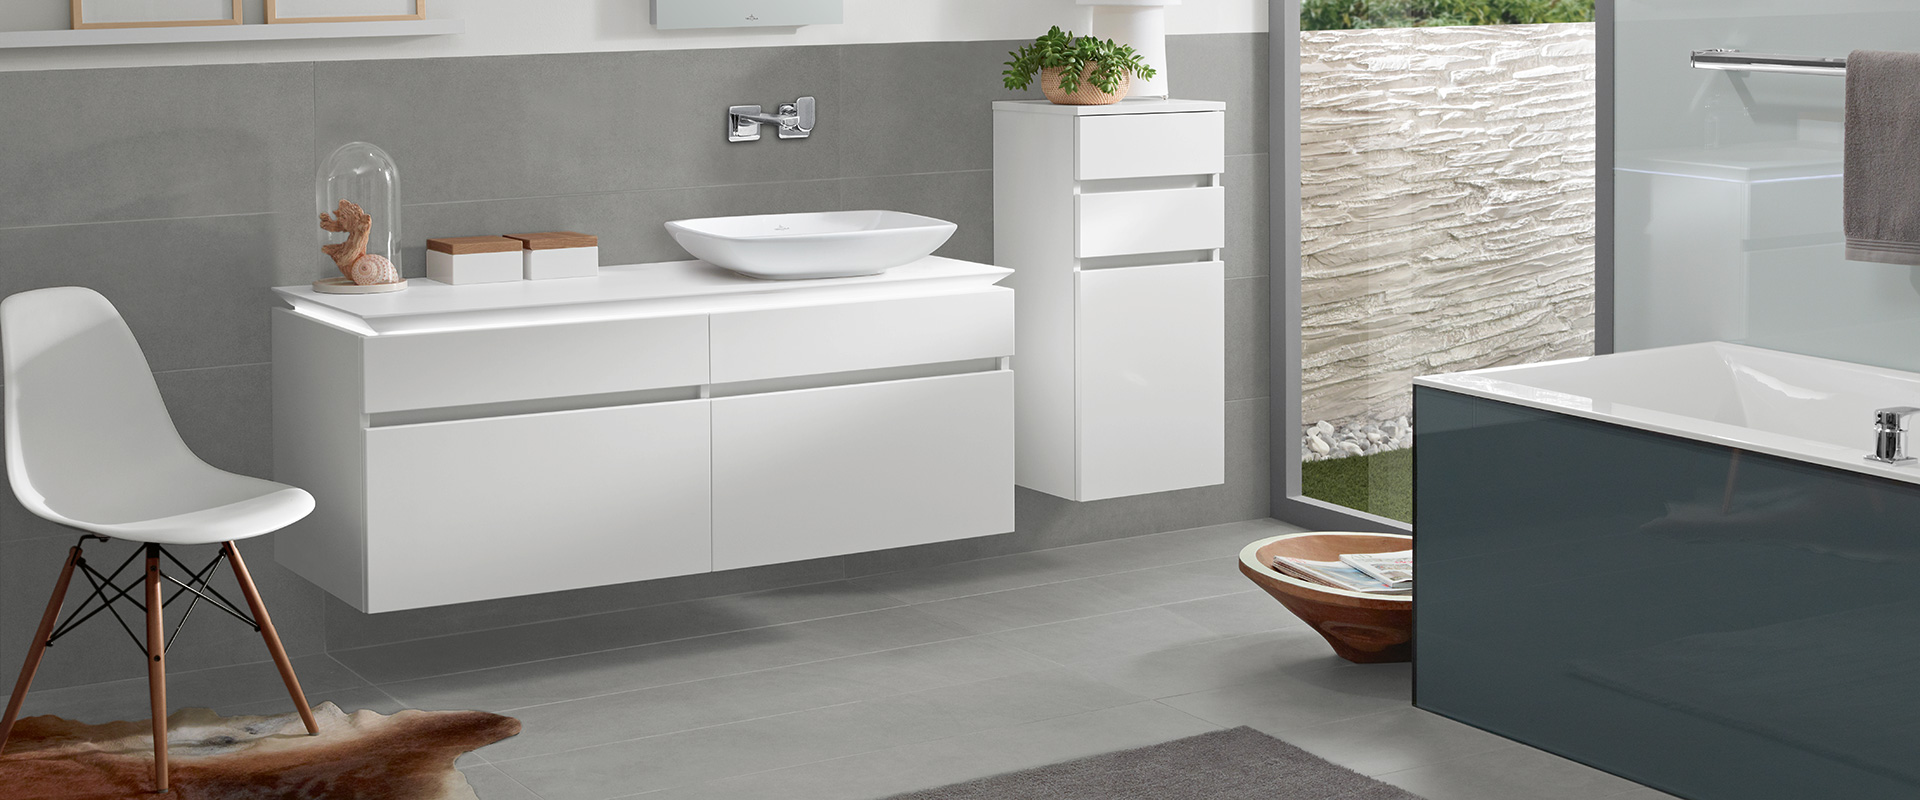 Villeroy Boch Badezimmer, loop & friends collection by villeroy & boch – discover the, Design ideen